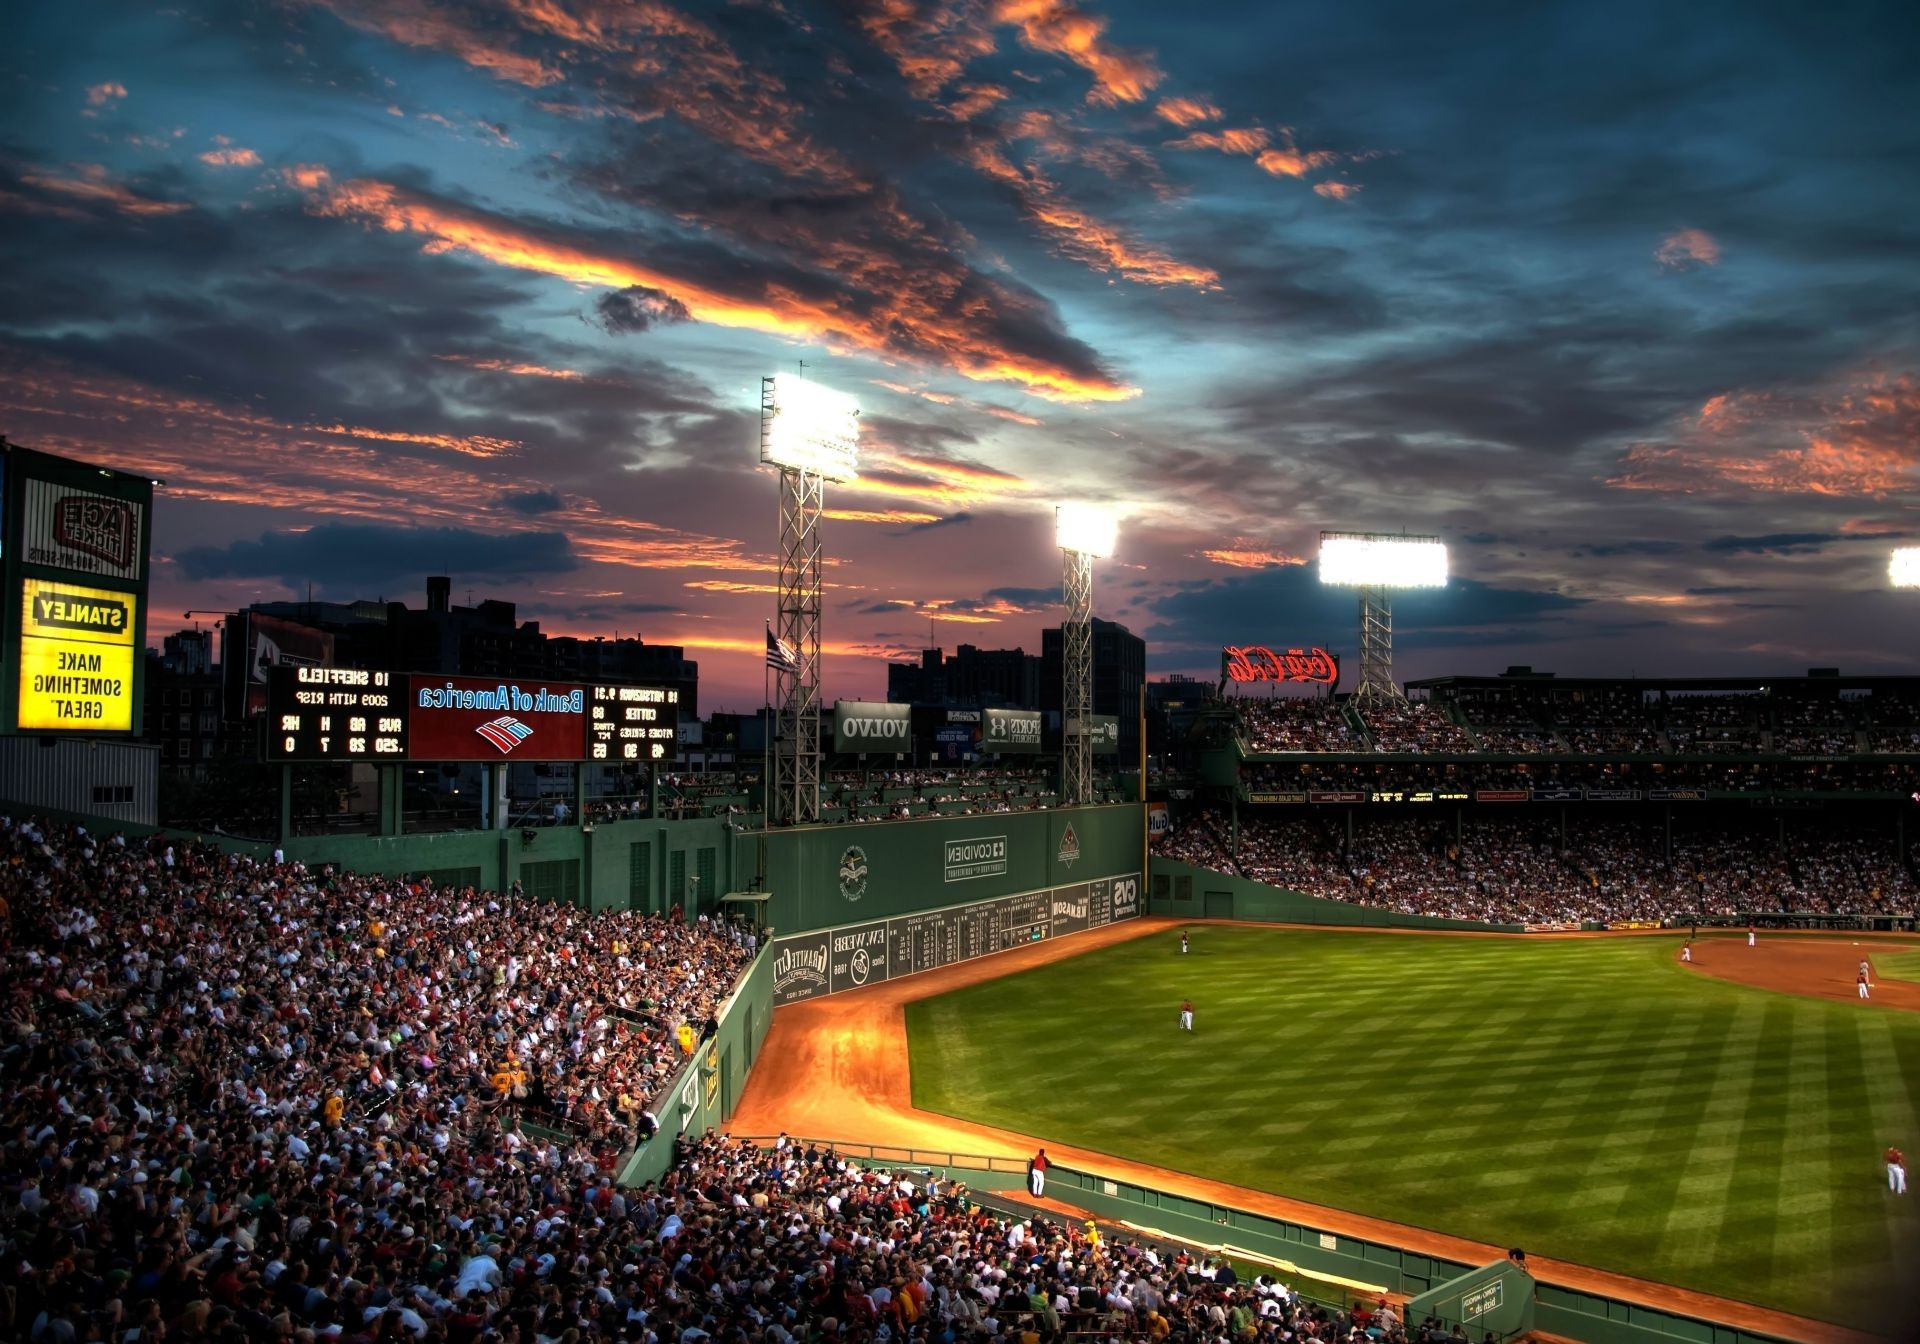 Fenway Park Boston Cloud People Beysball Baseball Android Wallpapers For Free